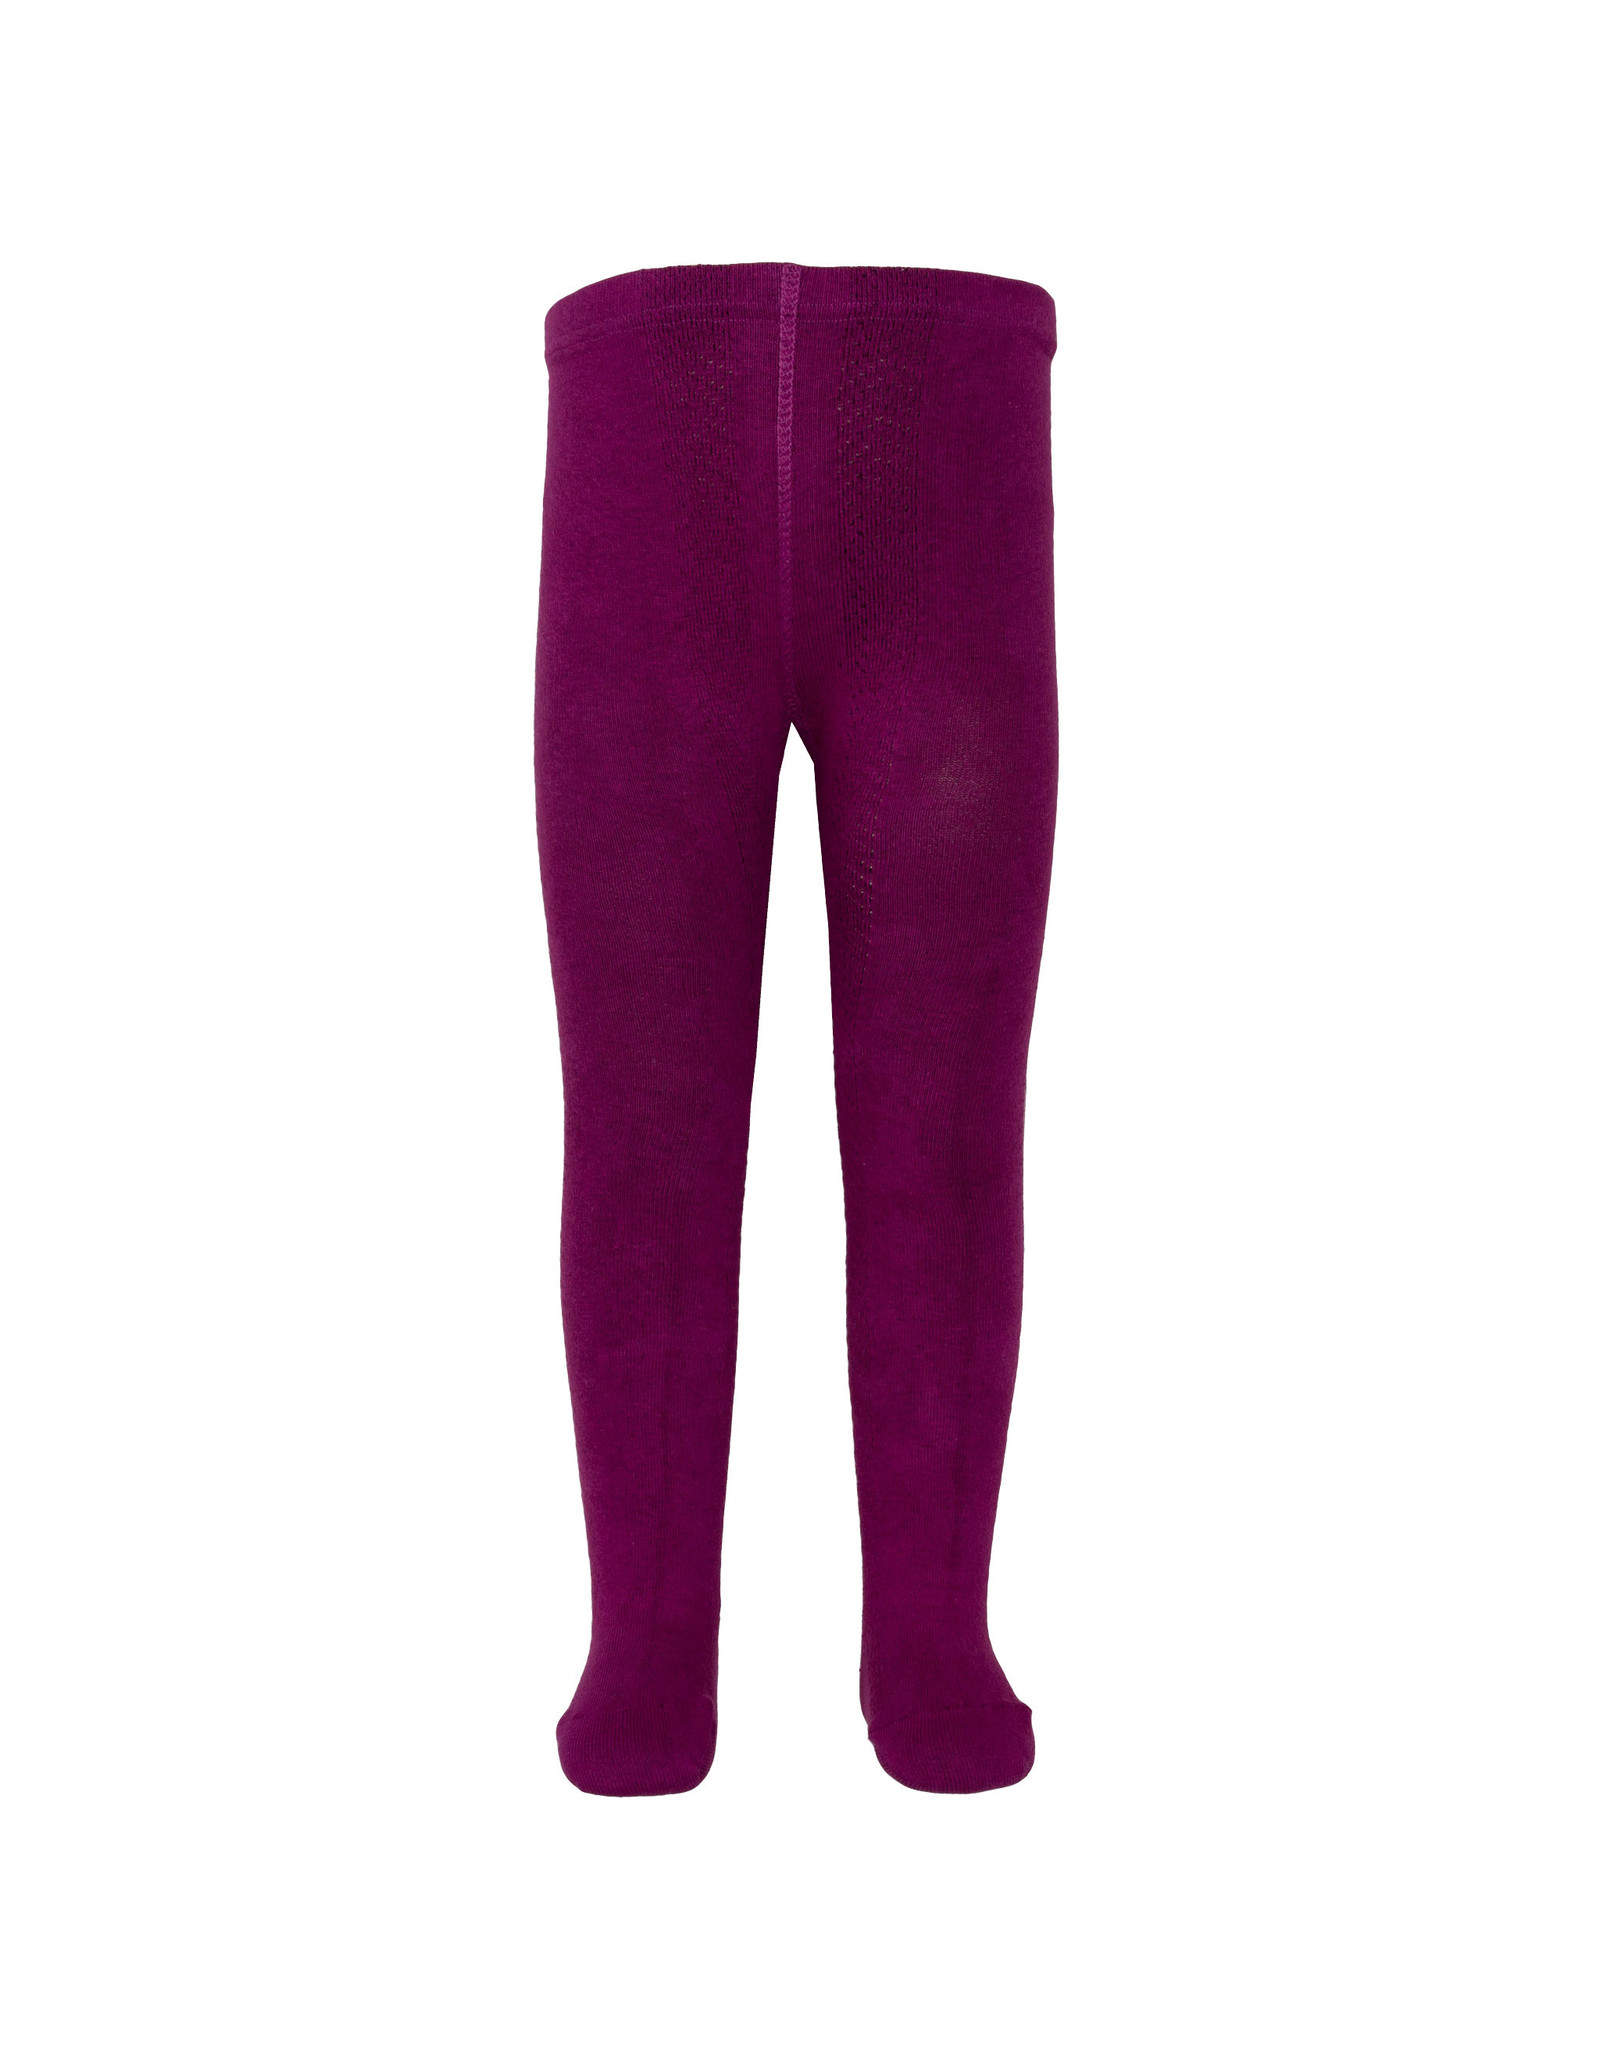 Kite Clothing Side Stitch Tights - Berry